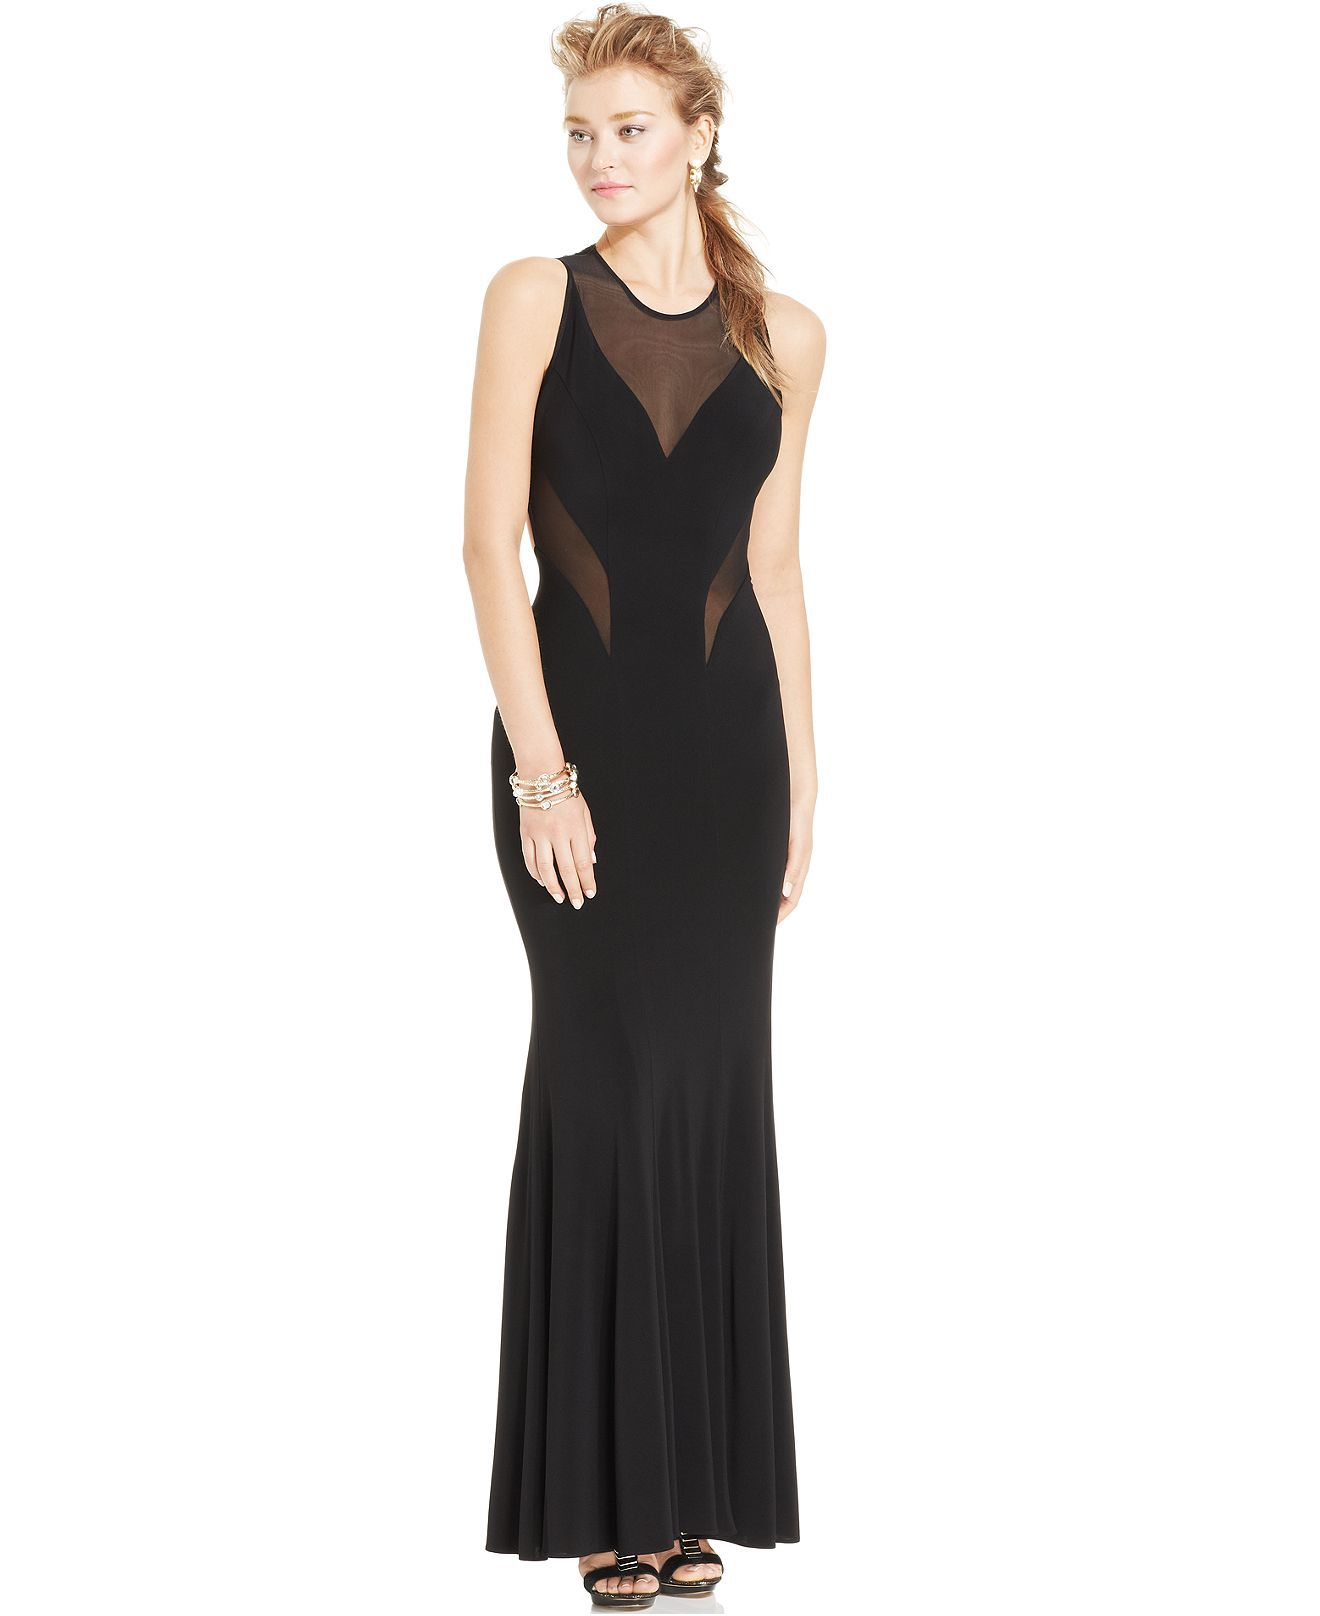 Betsy & Adam Illusion-Panel Cutout Gown - Dresses - Women - Macy's; BUT the panels (or the sheer fabric) should be lighter or colors other than black